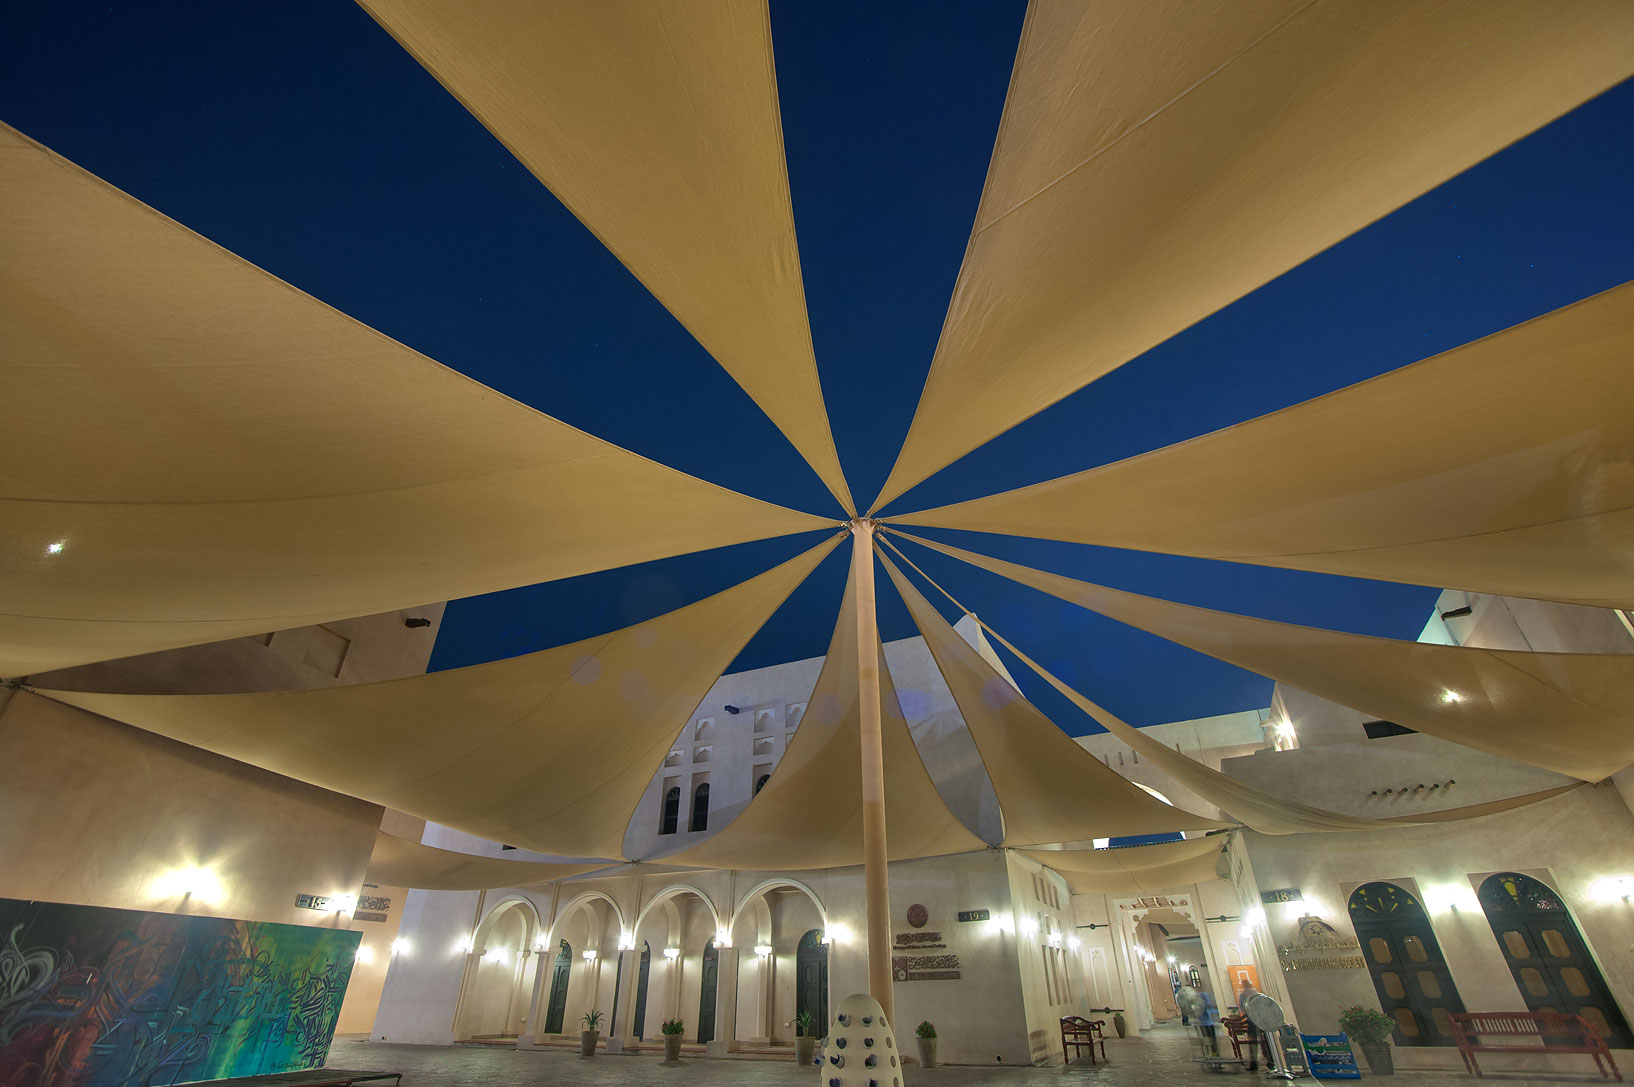 Shade sails in Katara Cultural Village. Doha, Qatar